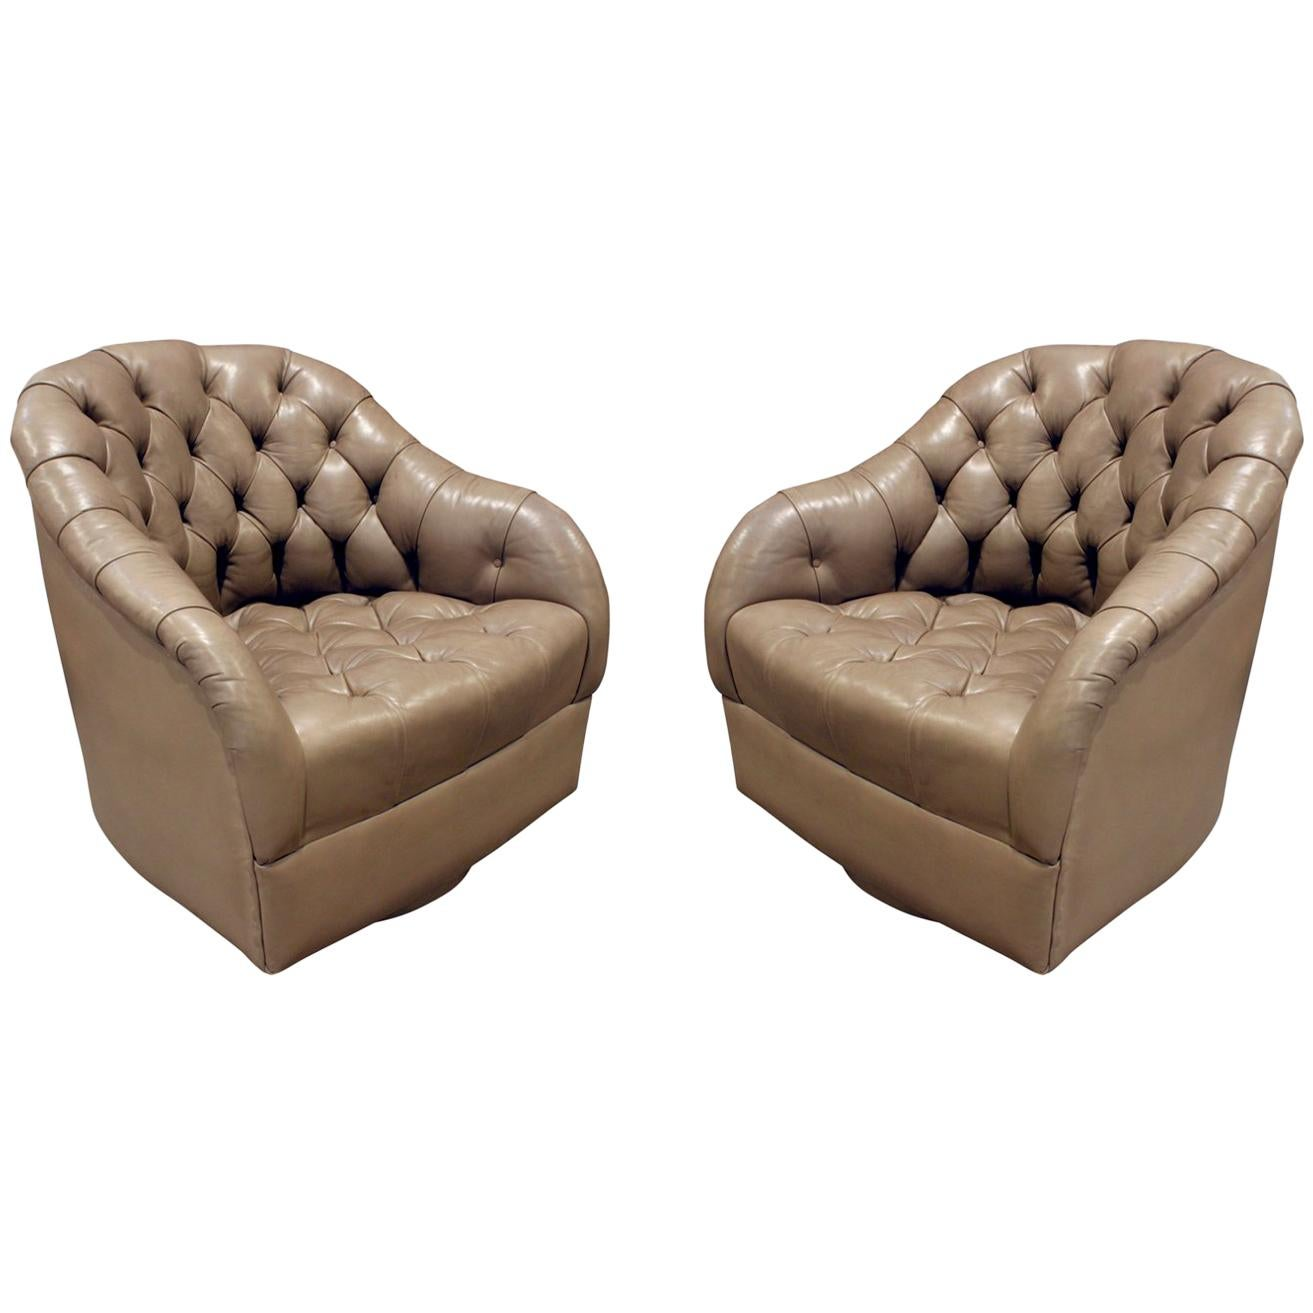 Ward Bennett Pair Of Swiveling Tufted Leather Club Chairs, 1960s For Sale